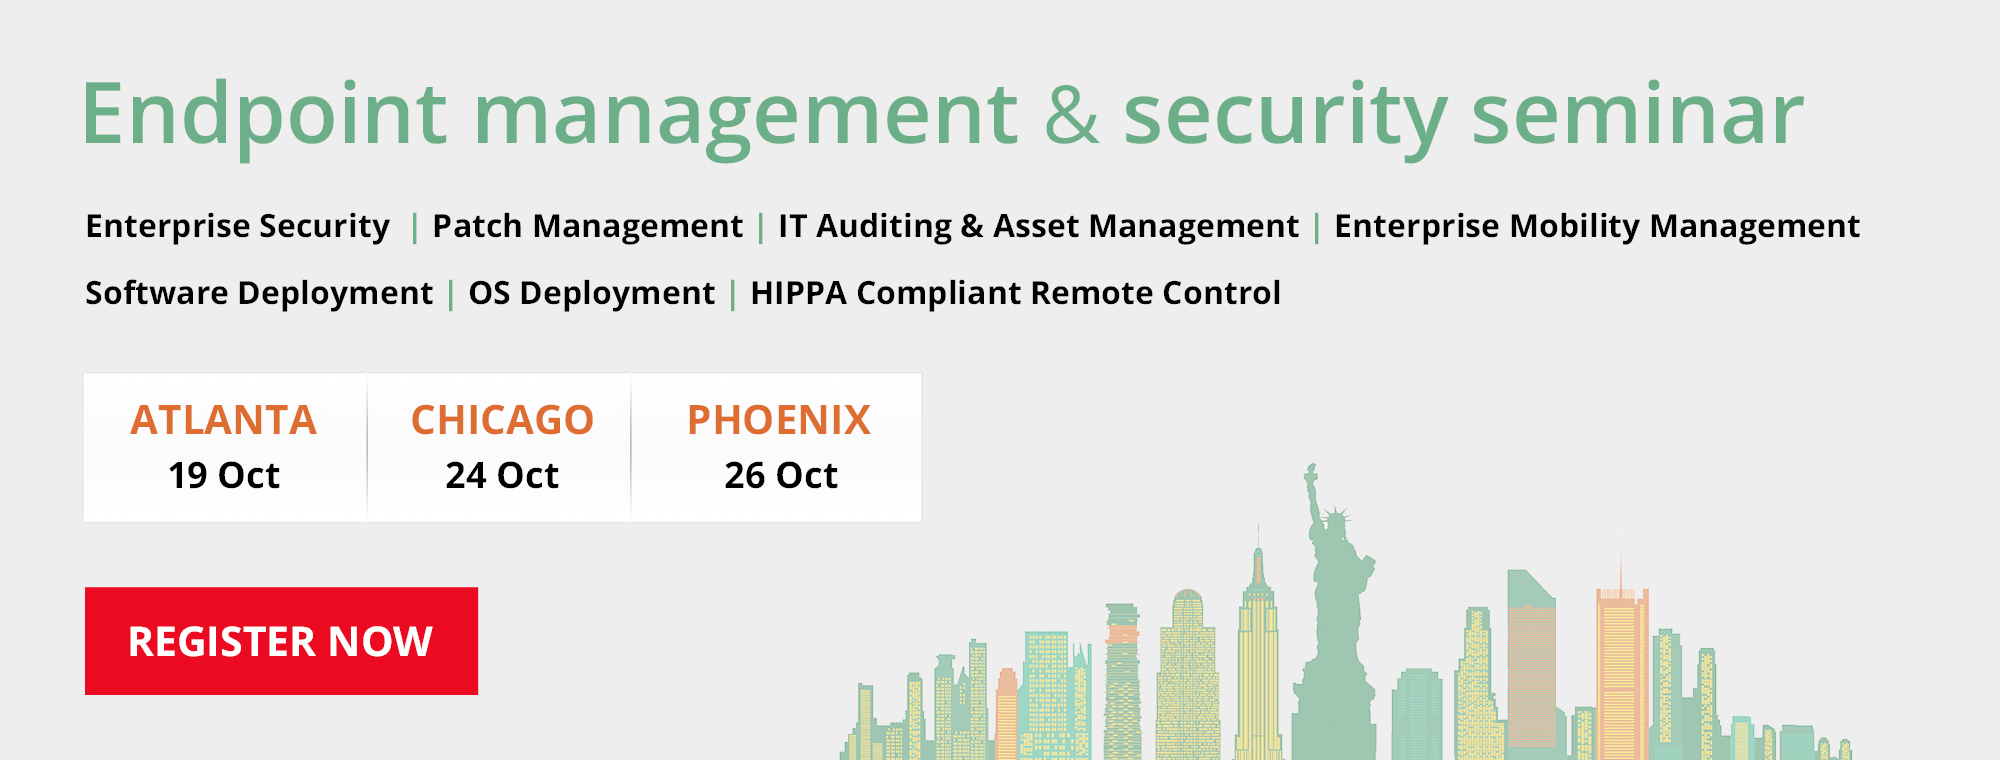 Endpoint management seminar October.